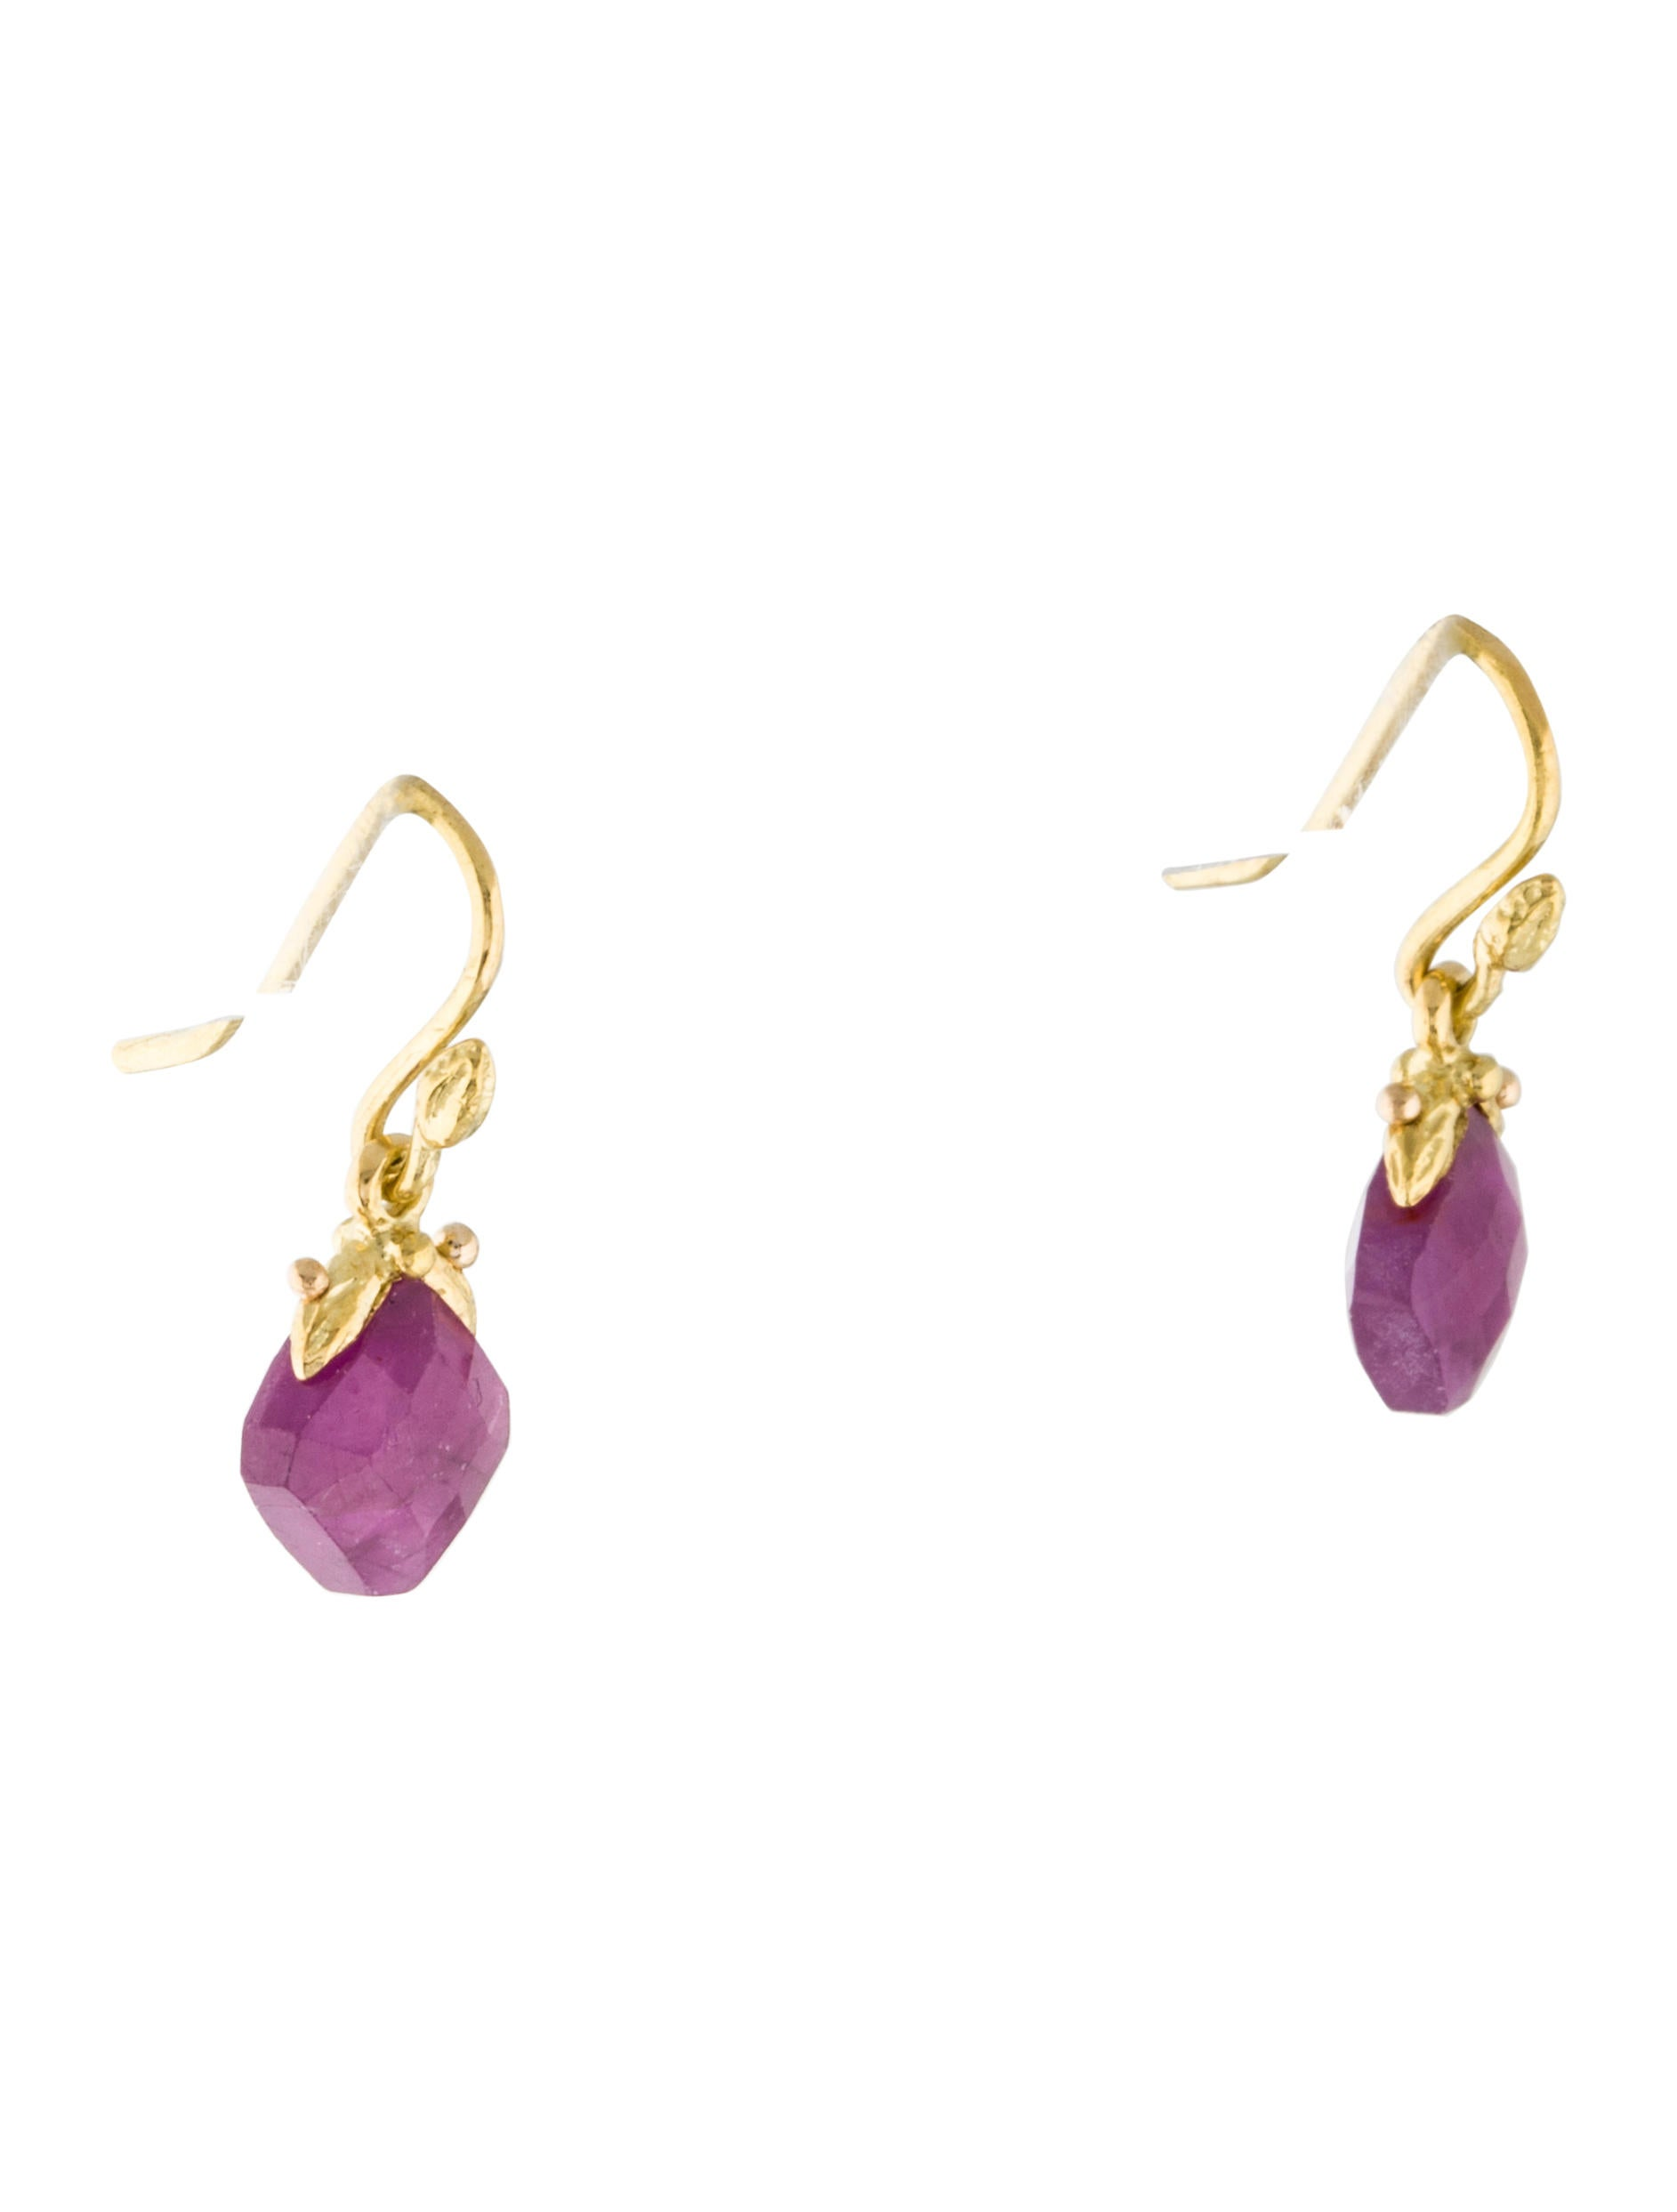 18k pink sapphire drop earrings earrings earri31418